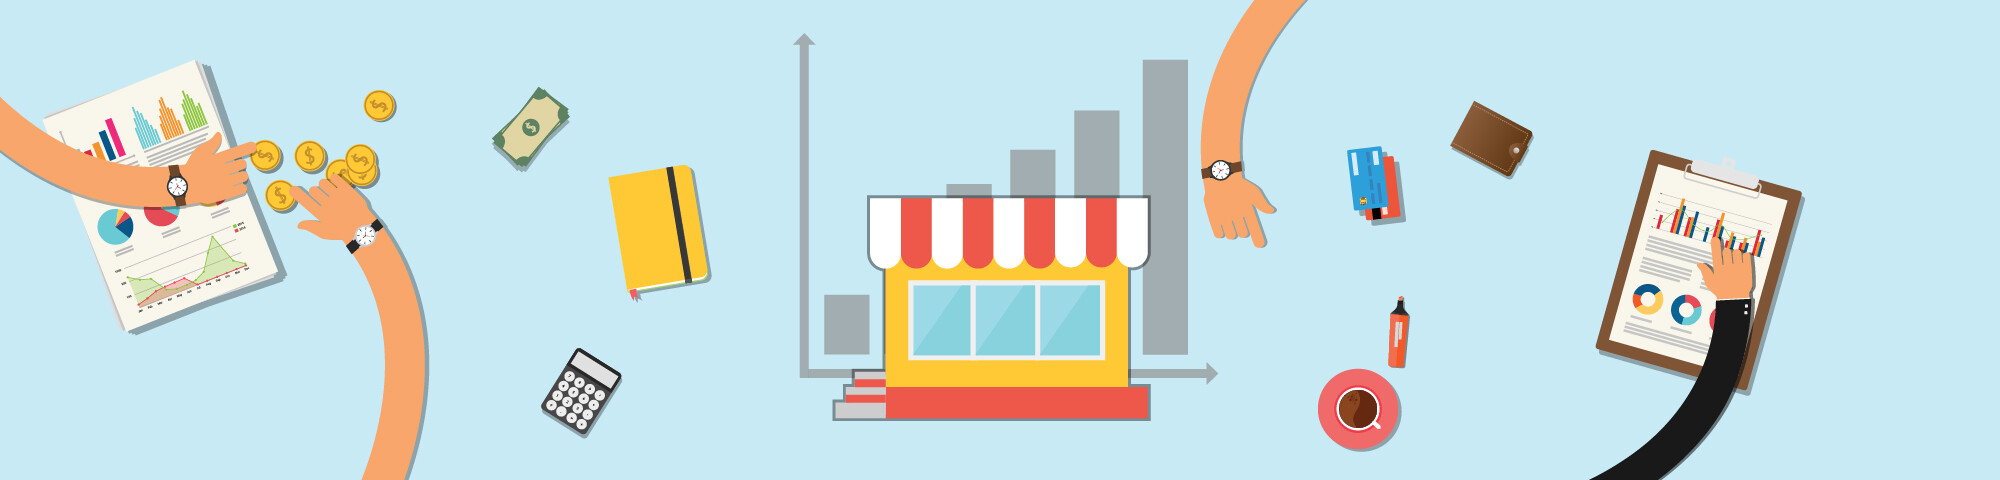 Evolving Your Small Business Marketing Strategy